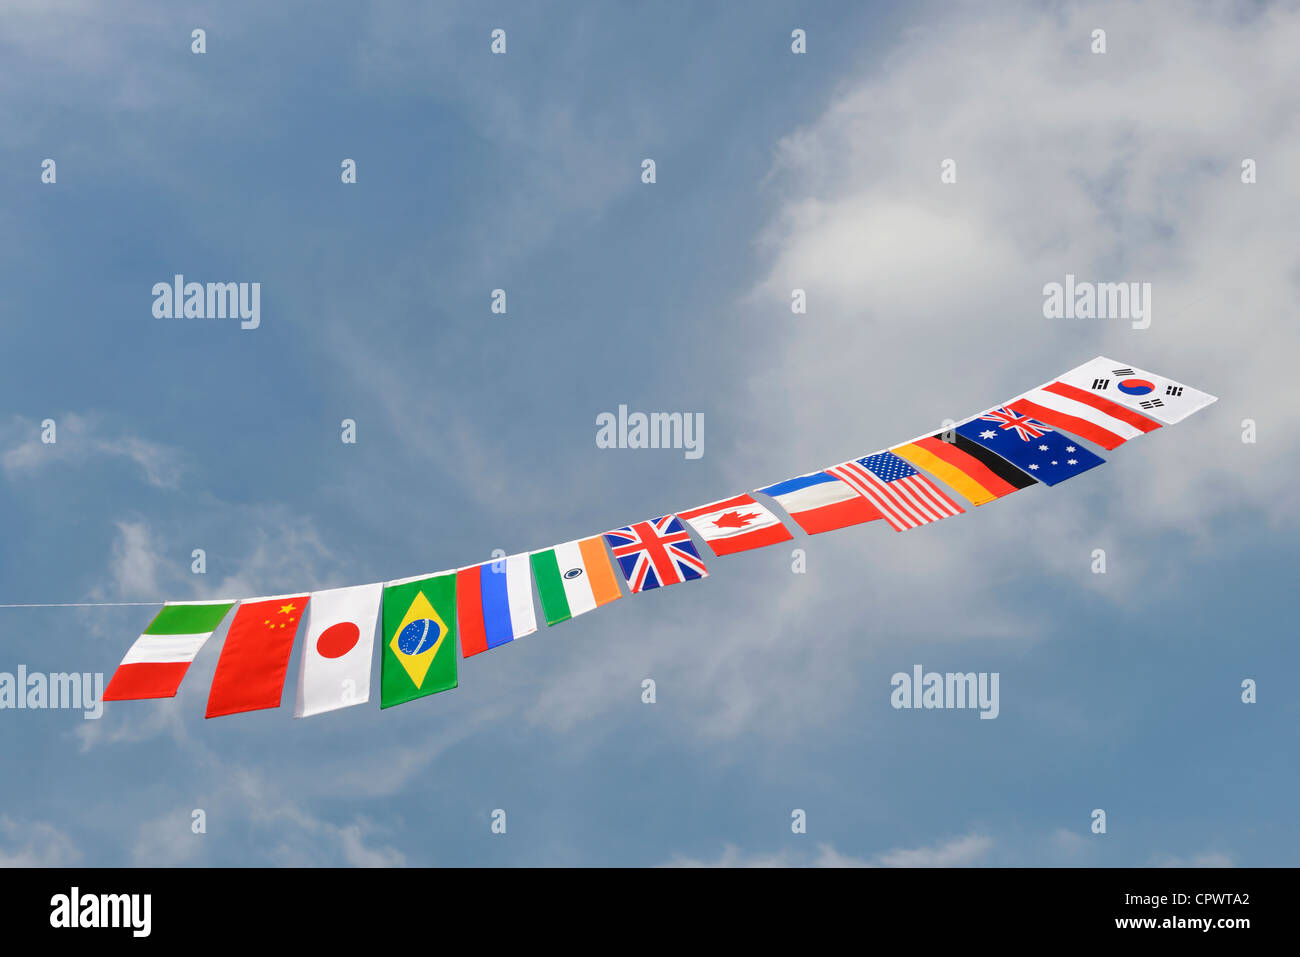 Flags of Nations - Stock Image